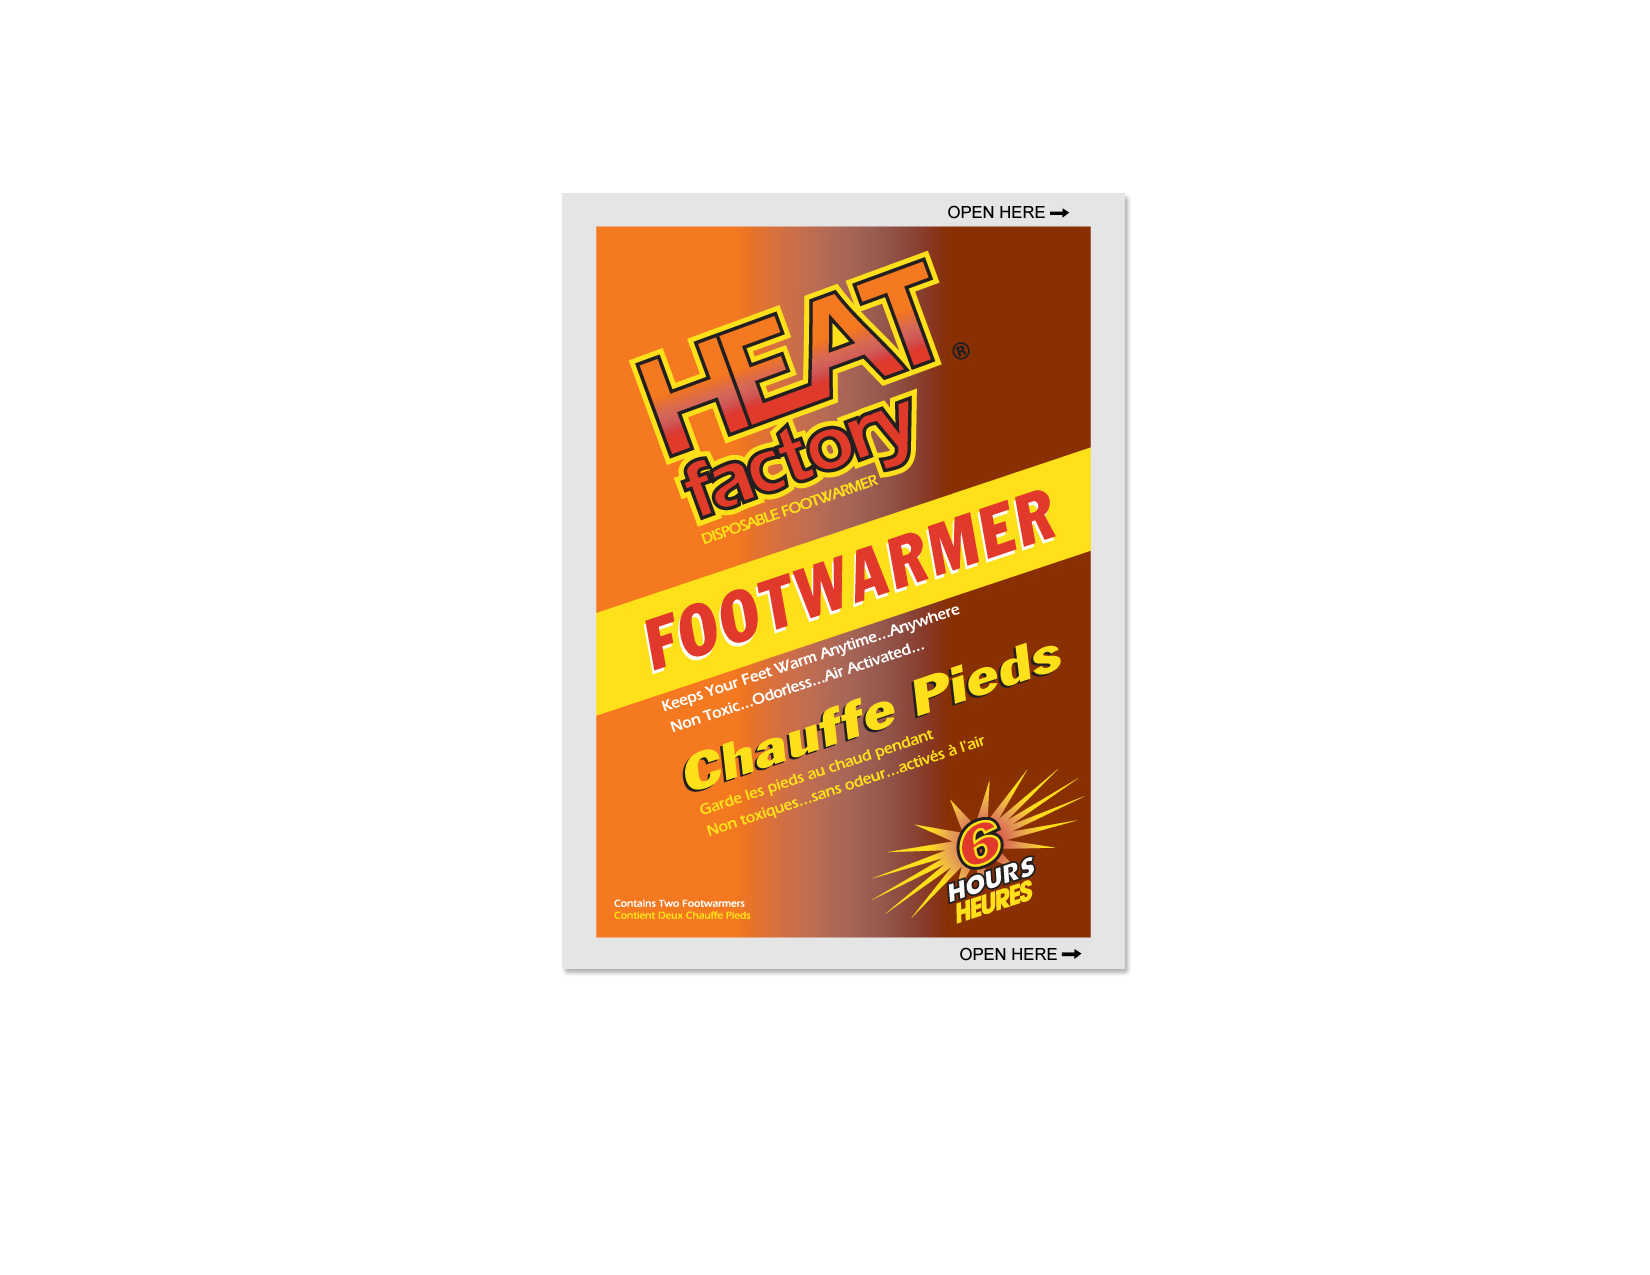 Heat Factory Footwarmer